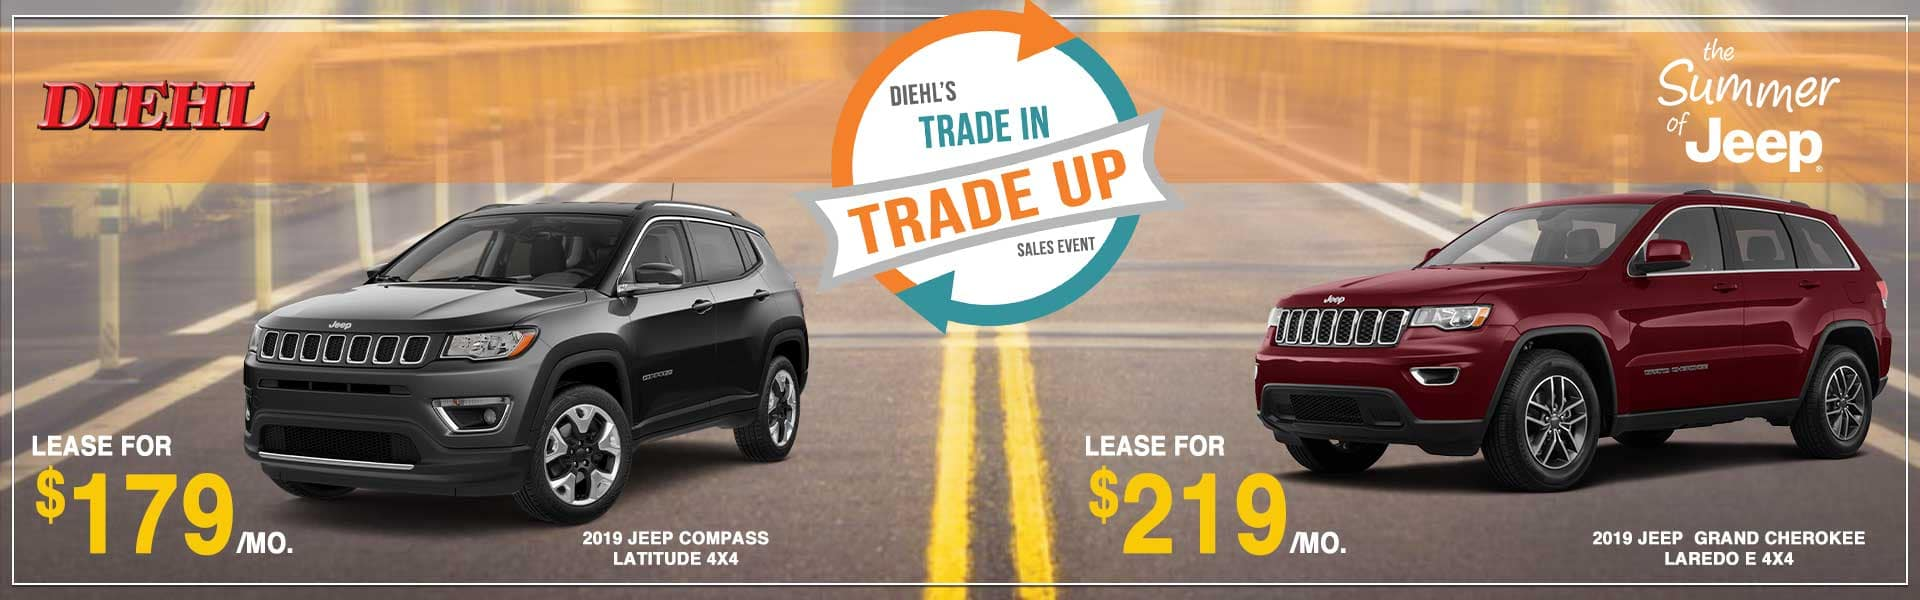 Diehl Automotive Trade In Trade Up Sales Event Summer of Jeep jeep grand cherokee jeep compass lease specials labor day sales event ROBINSON